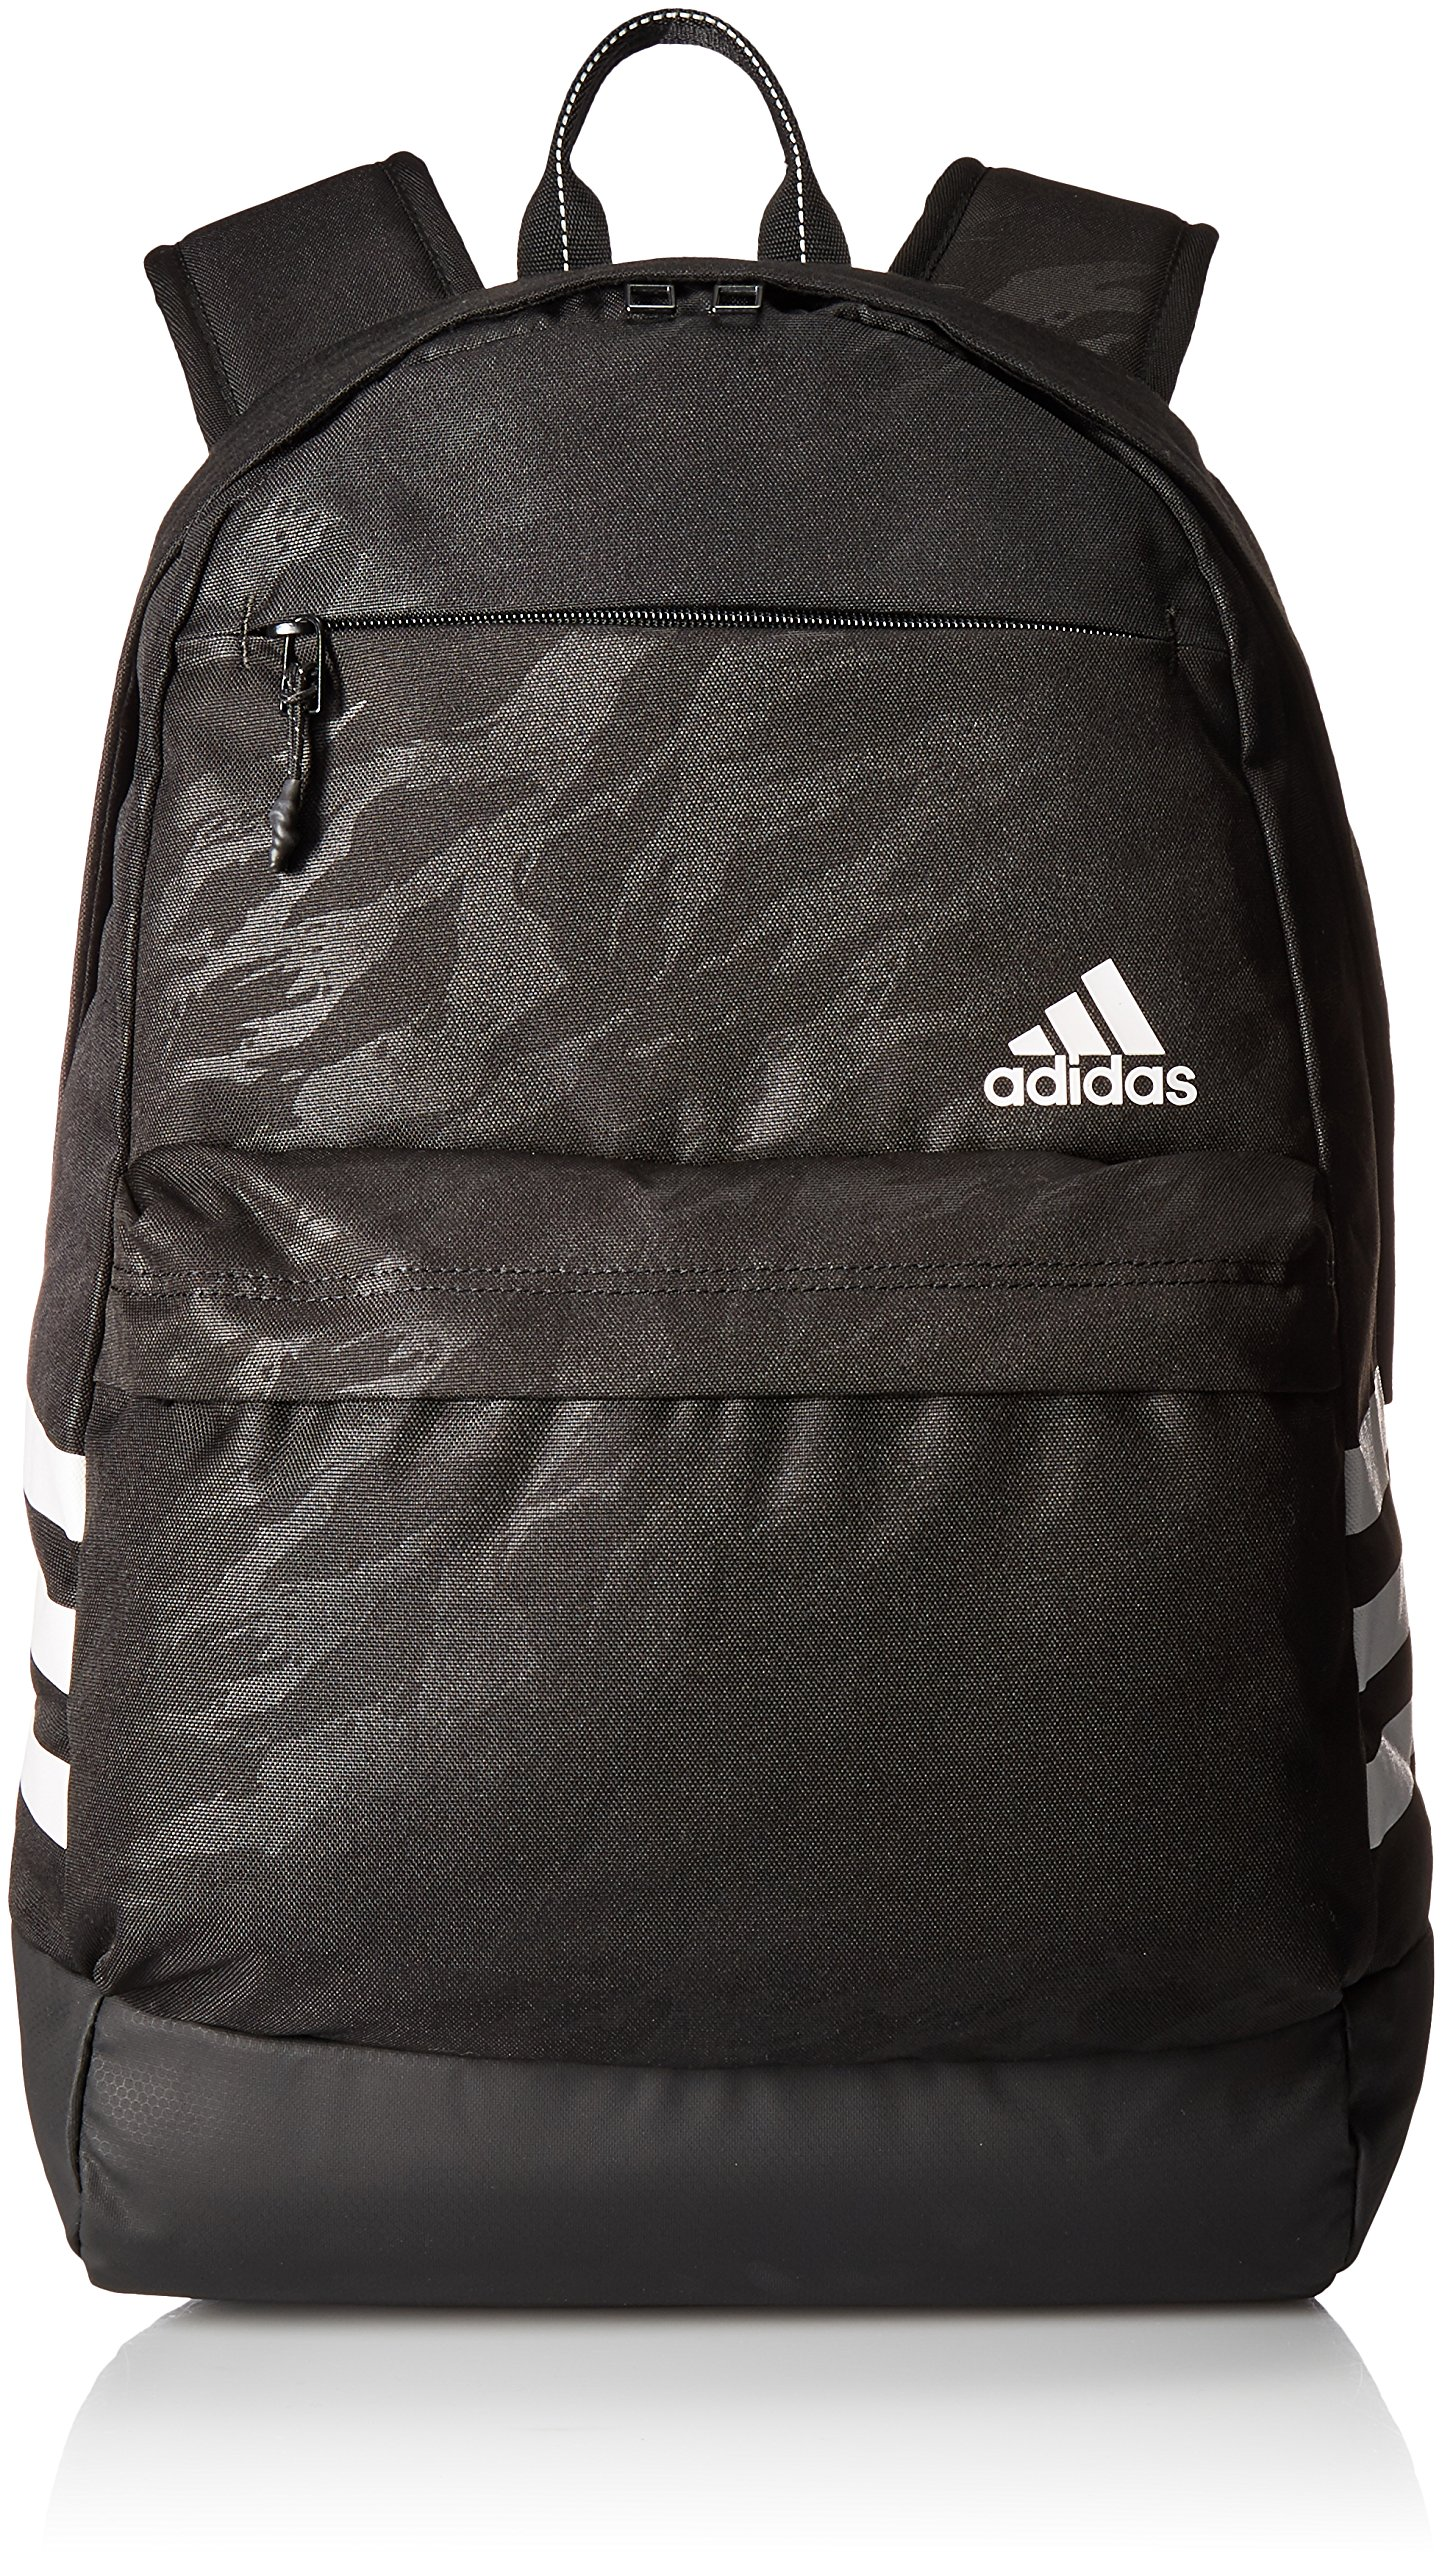 c5336ba0c470 adidas Daybreak Backpack - 5143173-260-P   Sports   Fitness Features ...